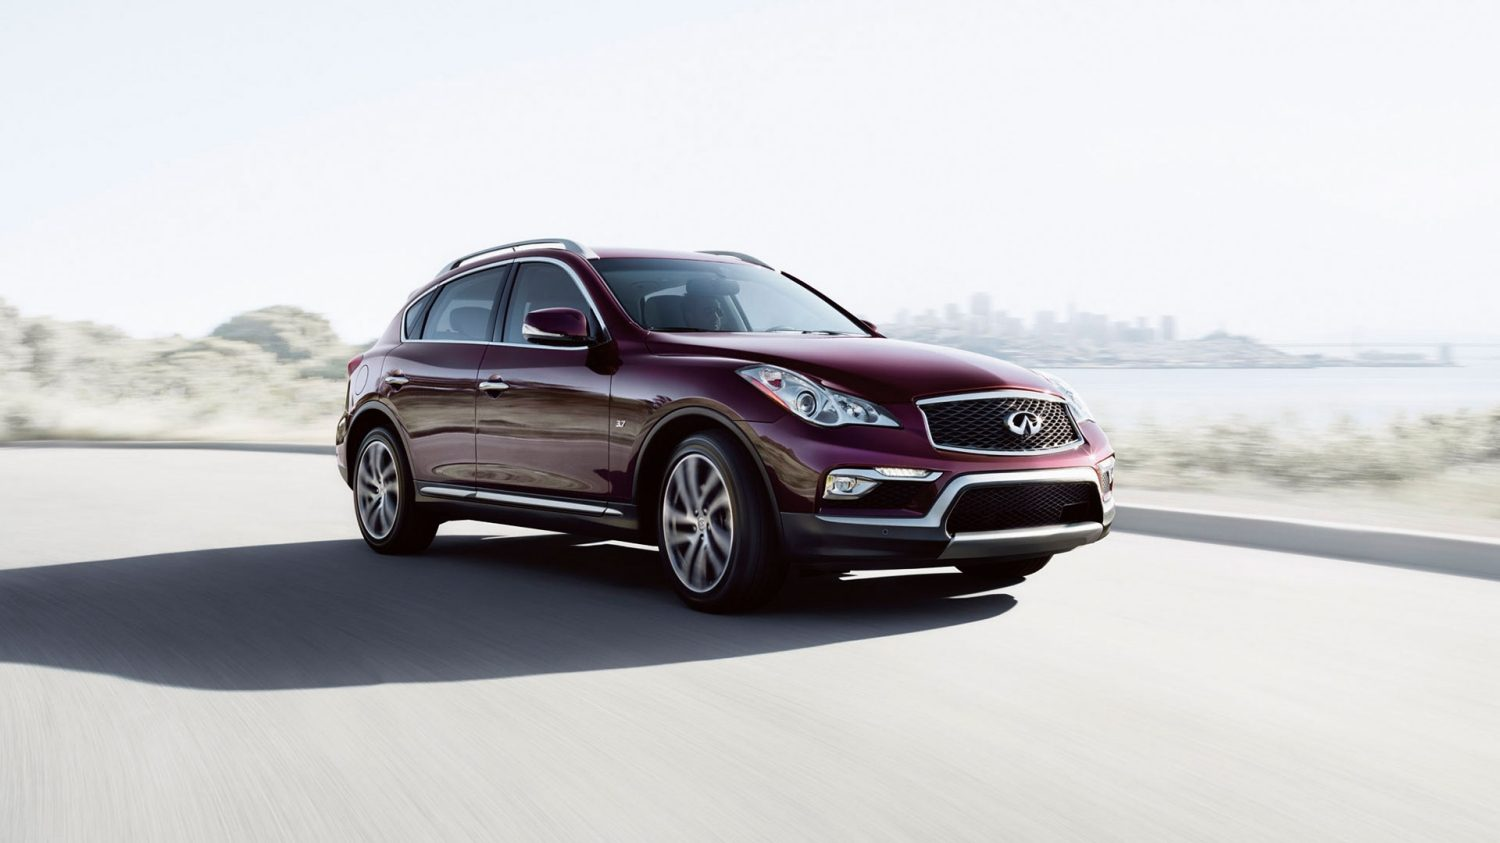 infiniti middle east infiniti qx50 crossover prices offers specs. Black Bedroom Furniture Sets. Home Design Ideas